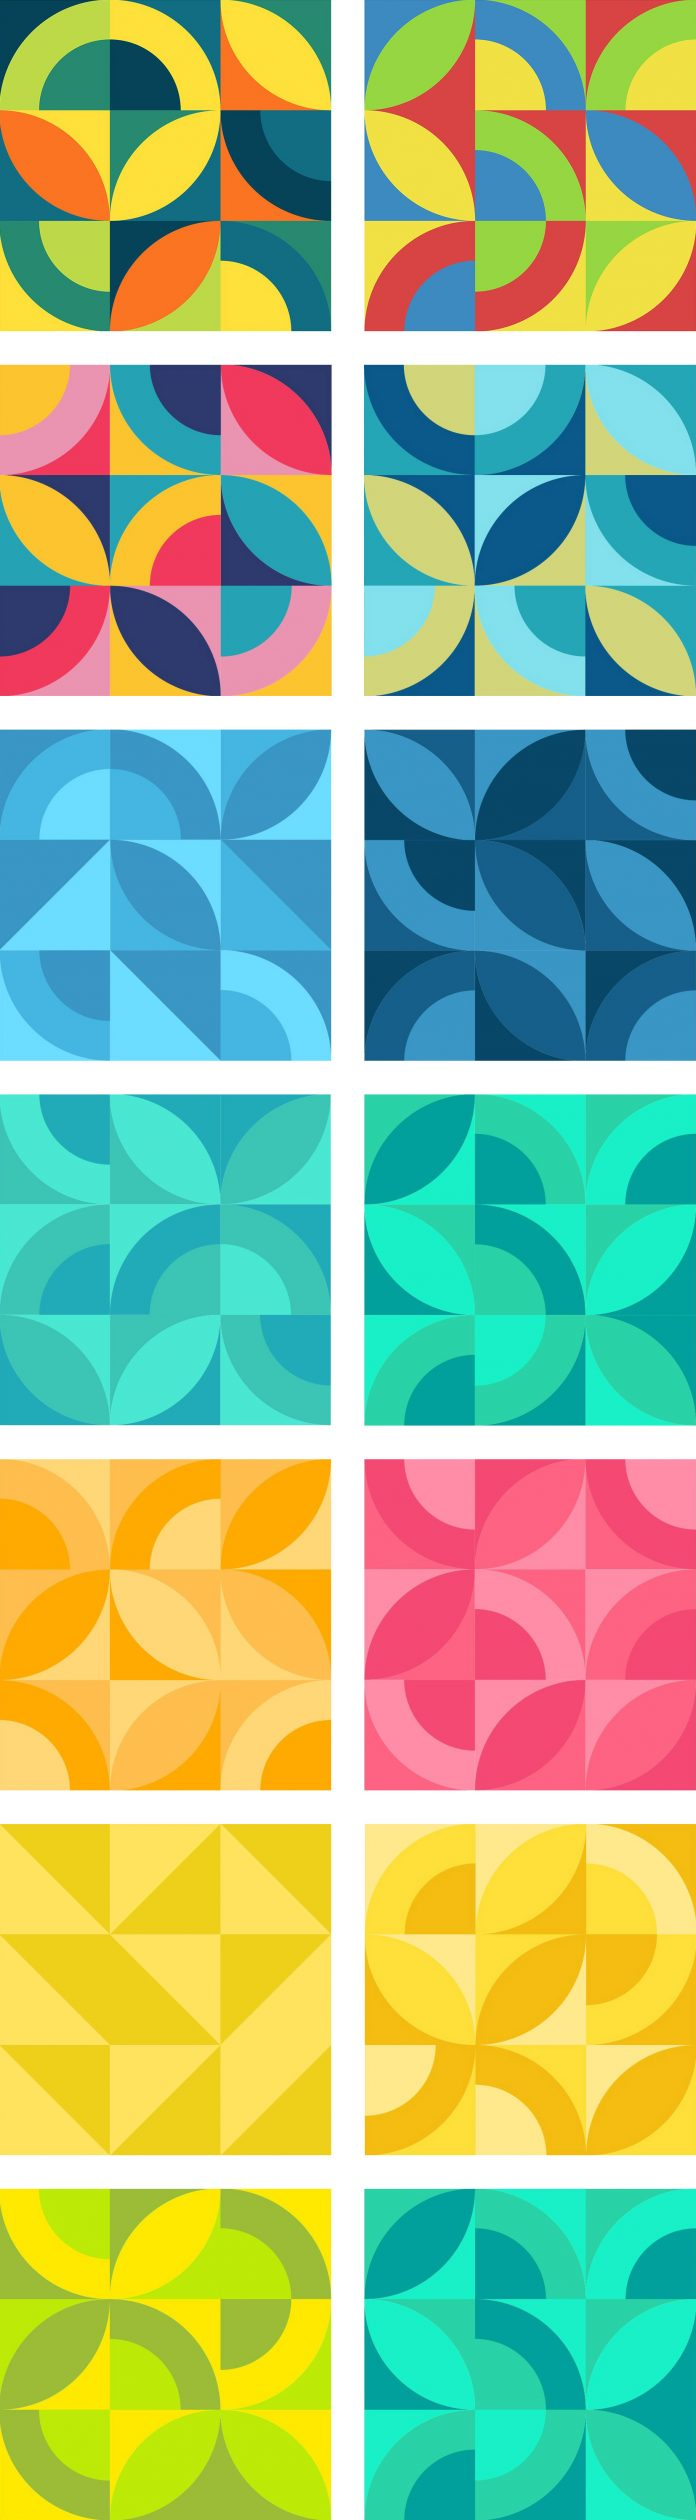 Organic Squar Patterns: 30 Seamless Graphics